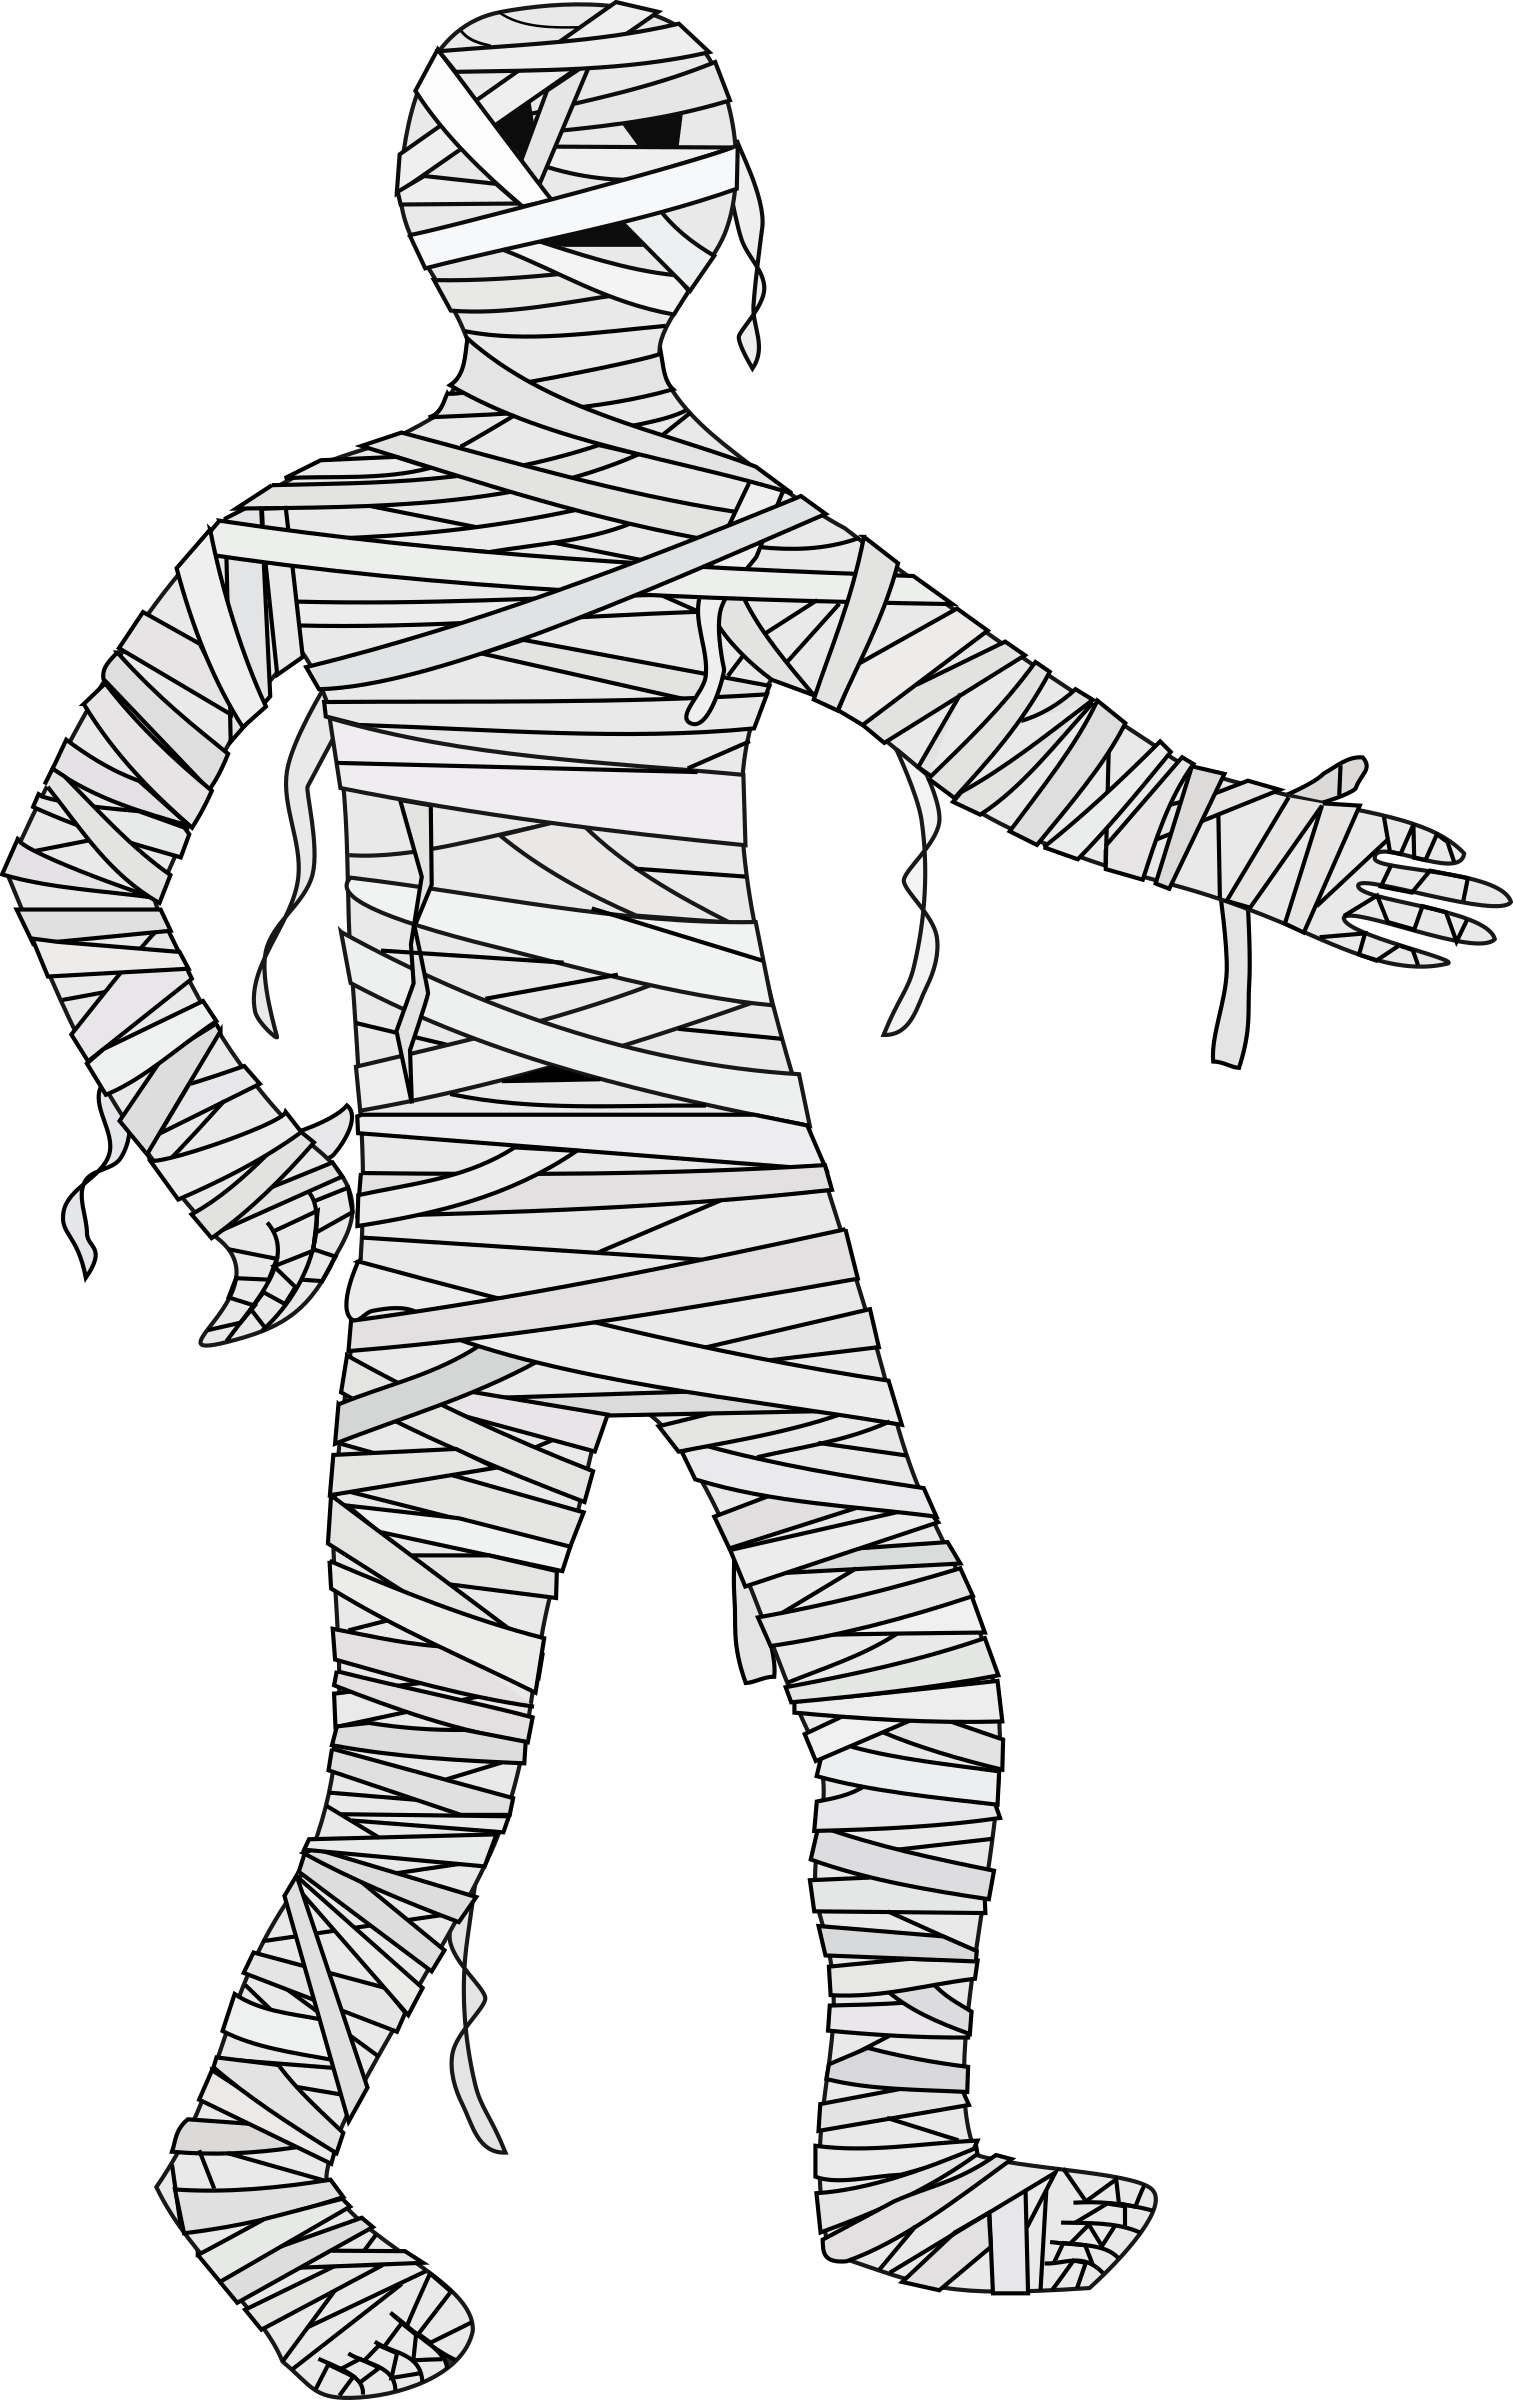 Mummy transparent real. Search result cliparts for